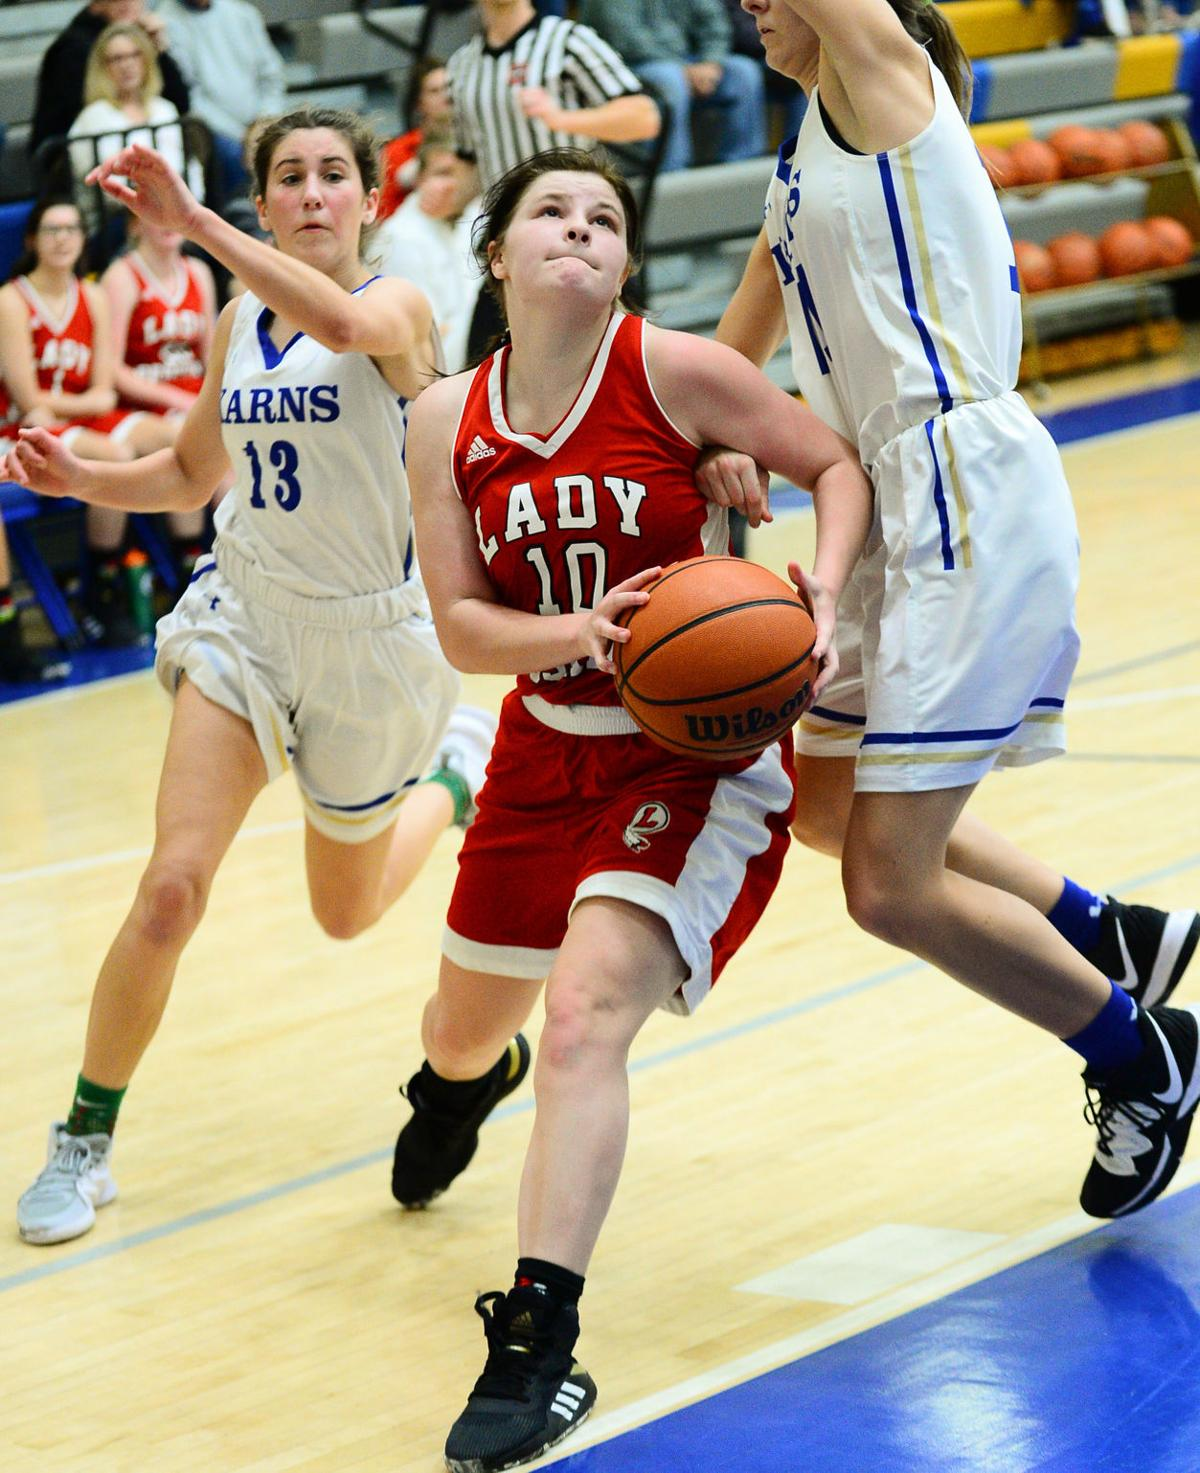 Loudon basketball sees mixed results